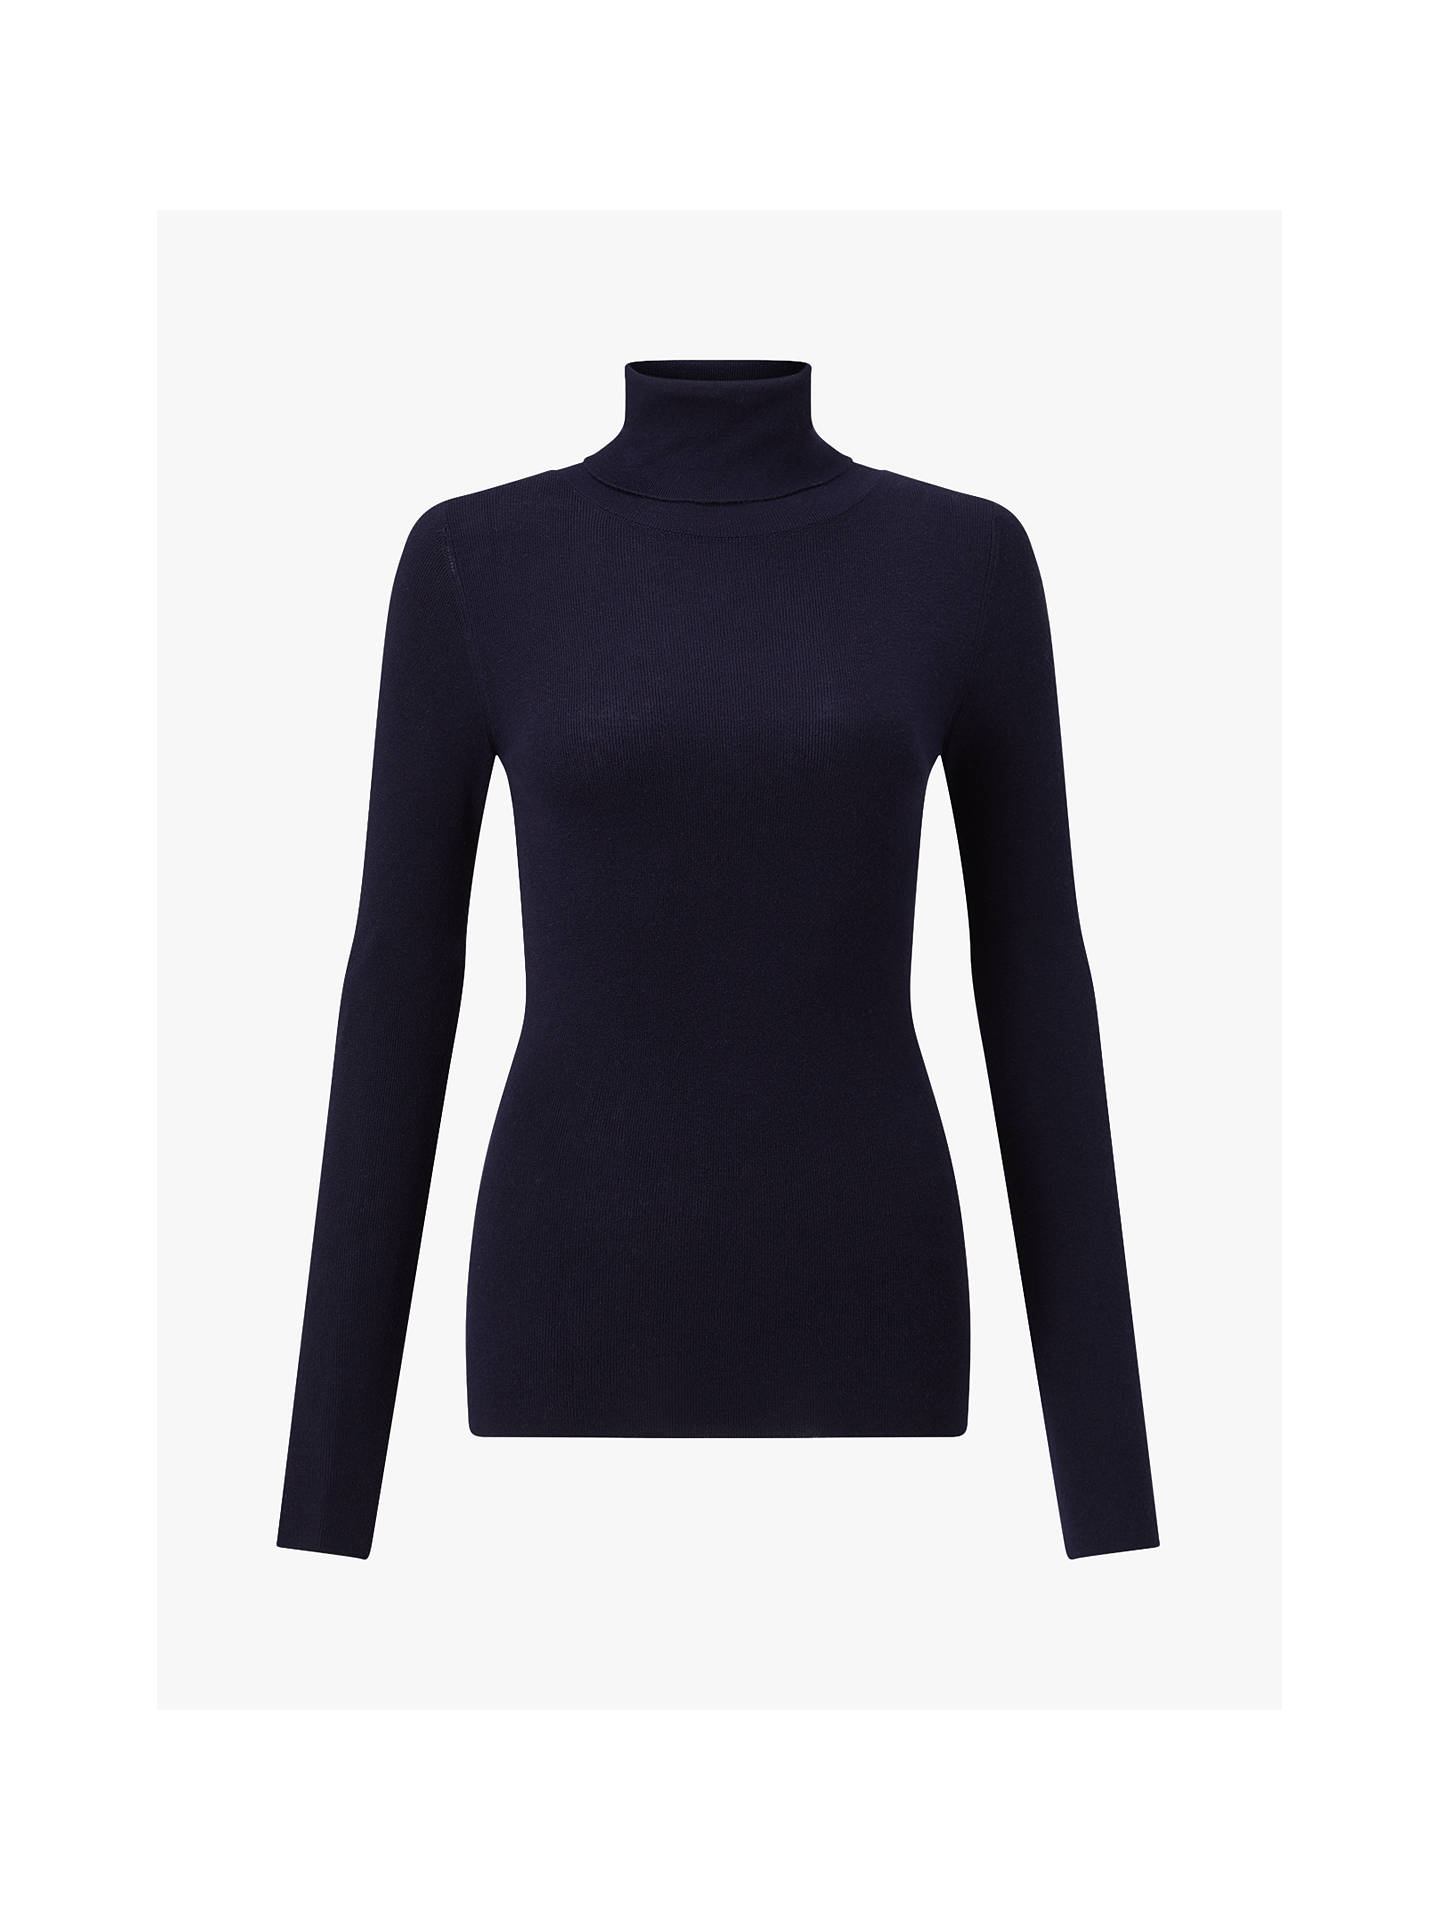 BuyJigsaw Silk Cotton Polo Neck Jumper, Navy, XS Online at johnlewis.com